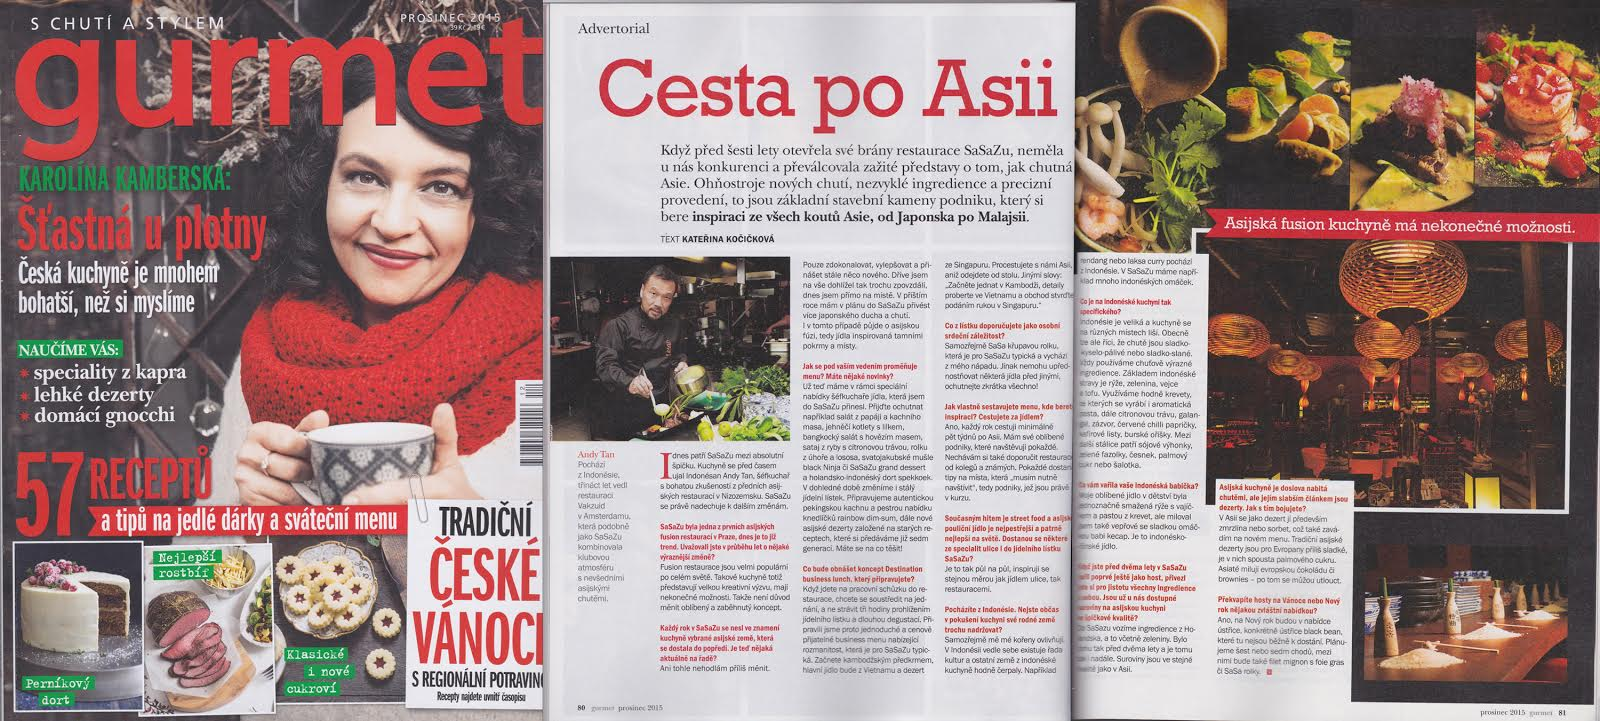 Gurmet article